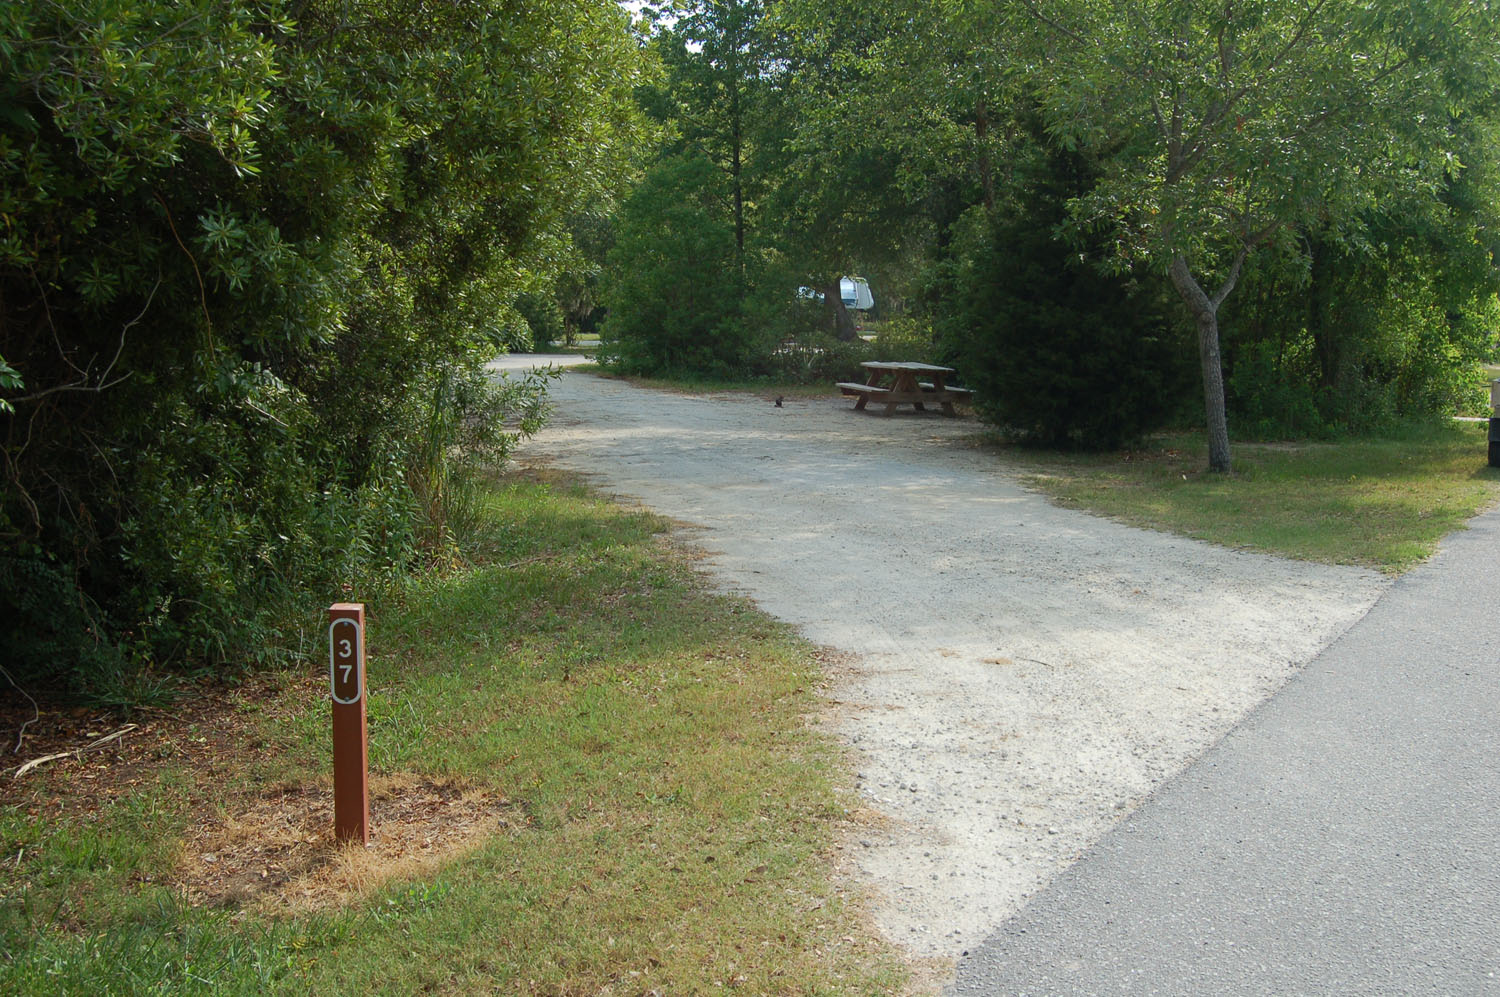 Image of campsite #37 at the Campground at James Island County Park